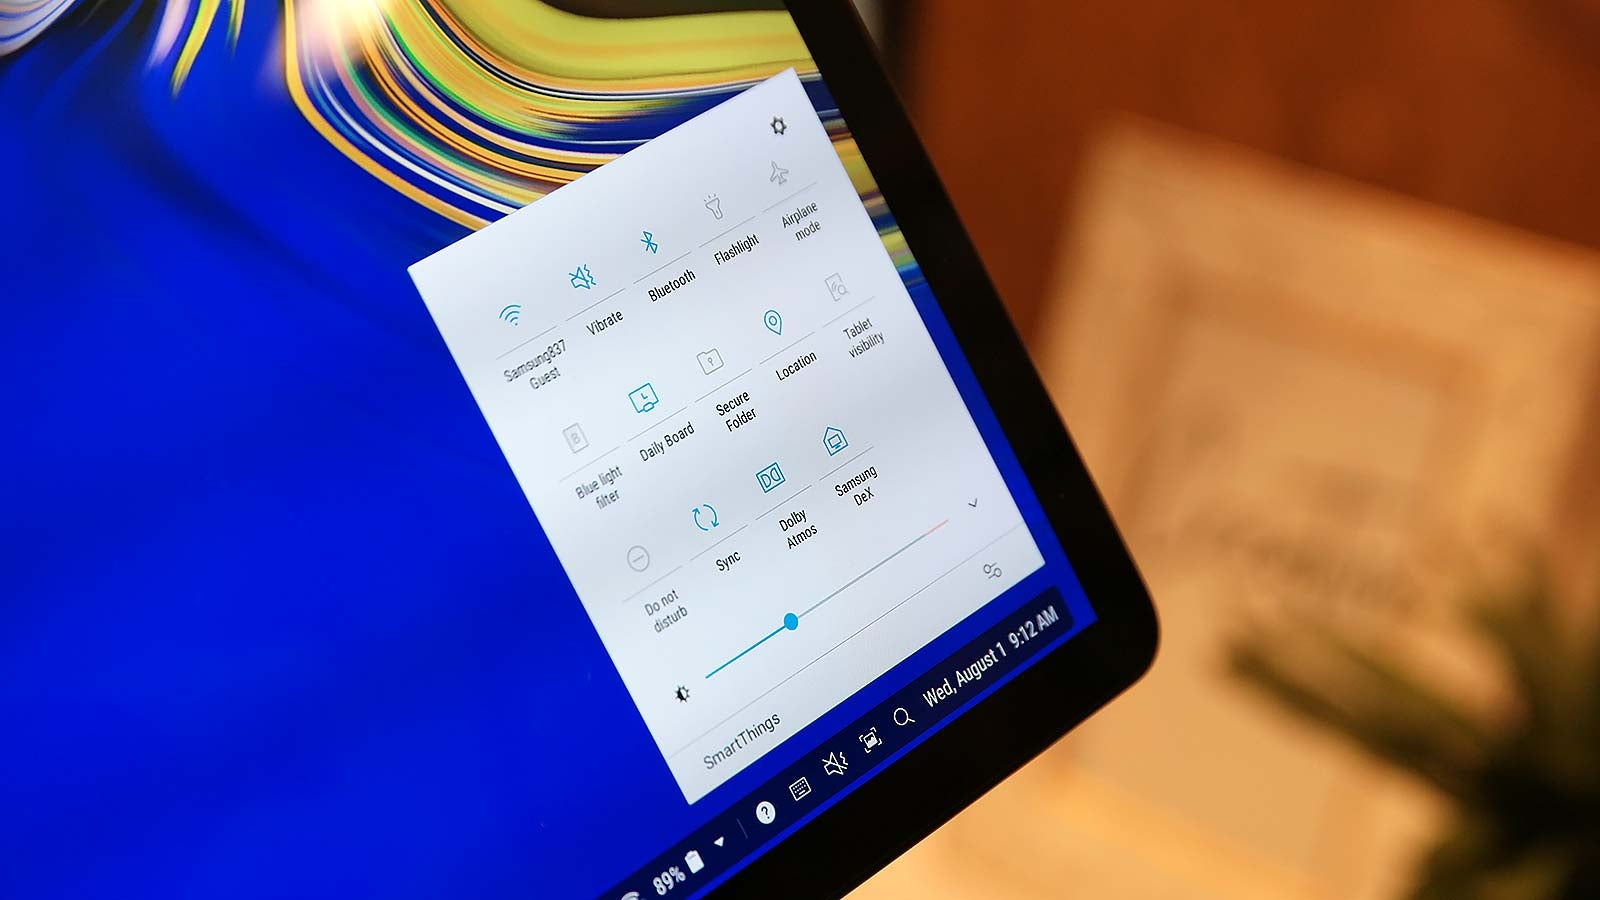 Samsung Galaxy Tab S4 Hands-on: Dex Amps Up the Productivity